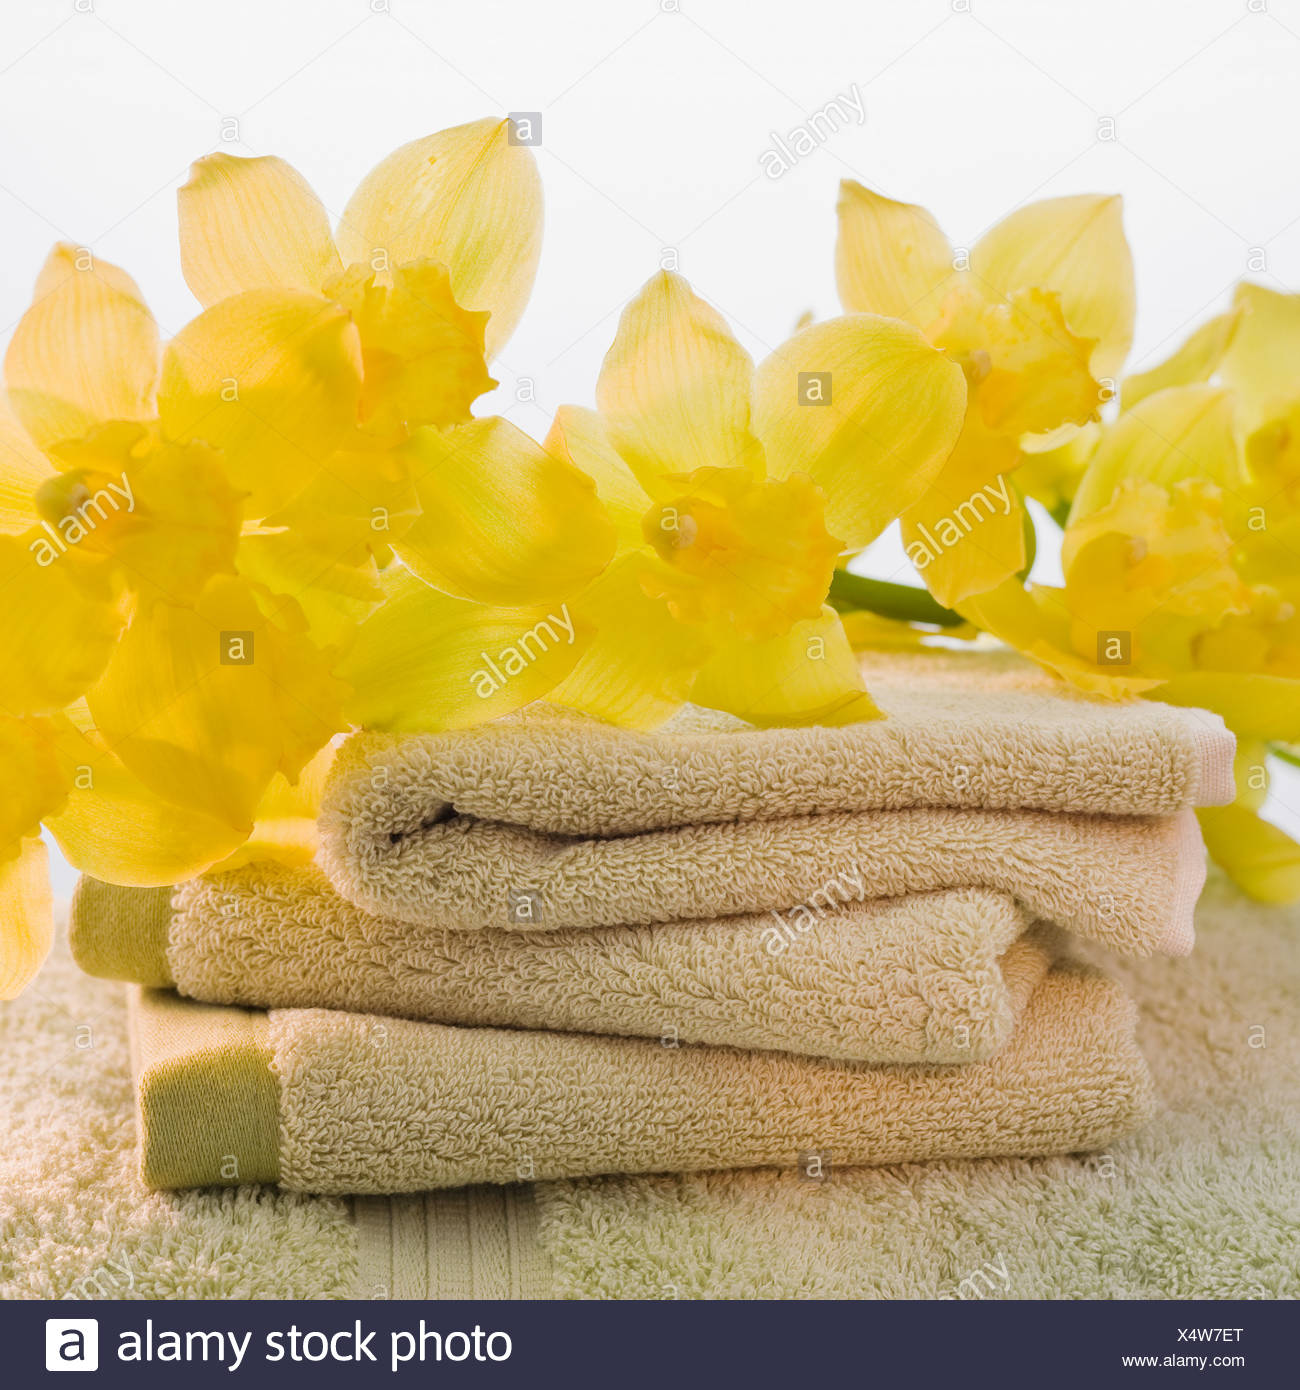 Flowers on stack of towels - Stock Image